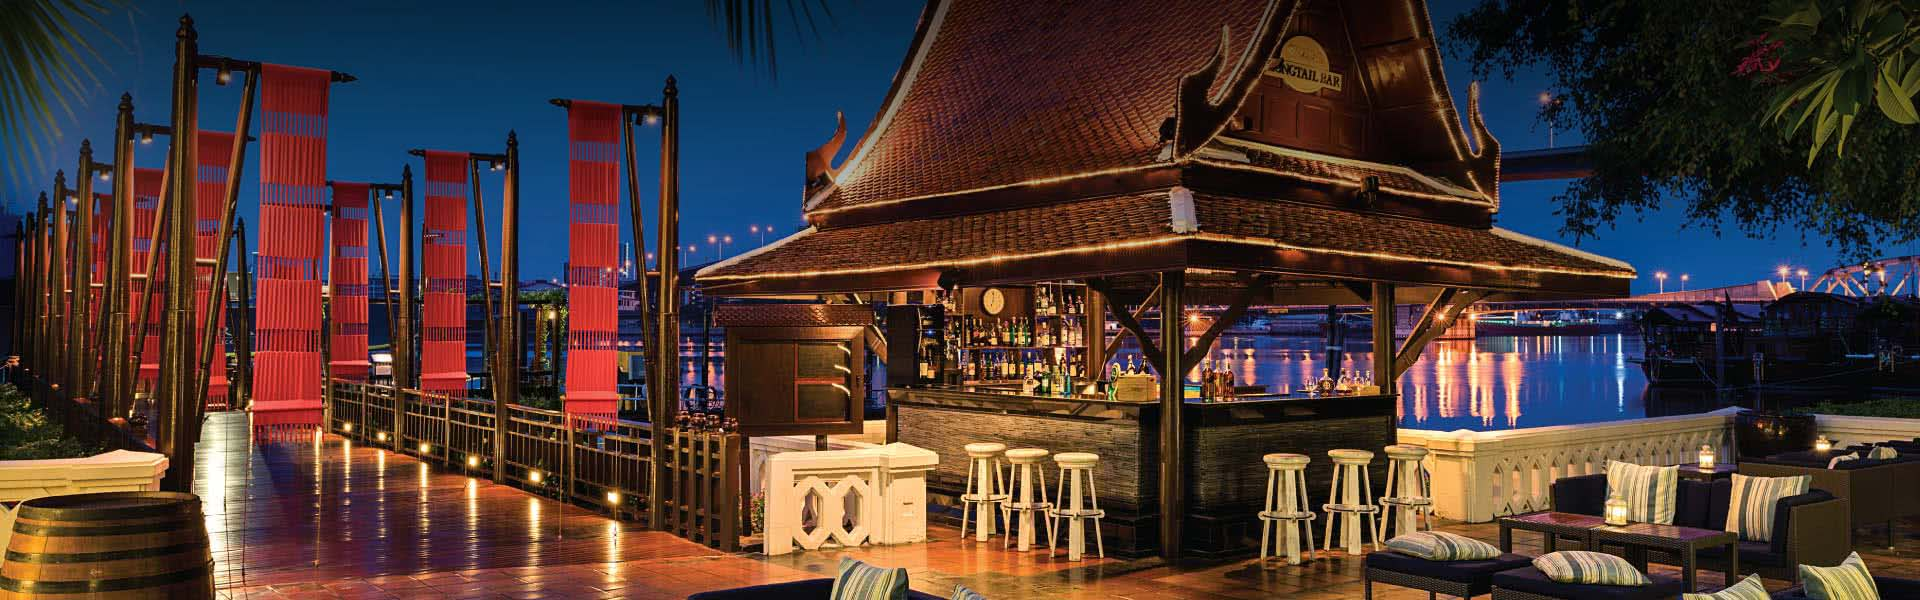 Bars in Bangkok Riverside | Longtail Bar at Anantara Bangkok